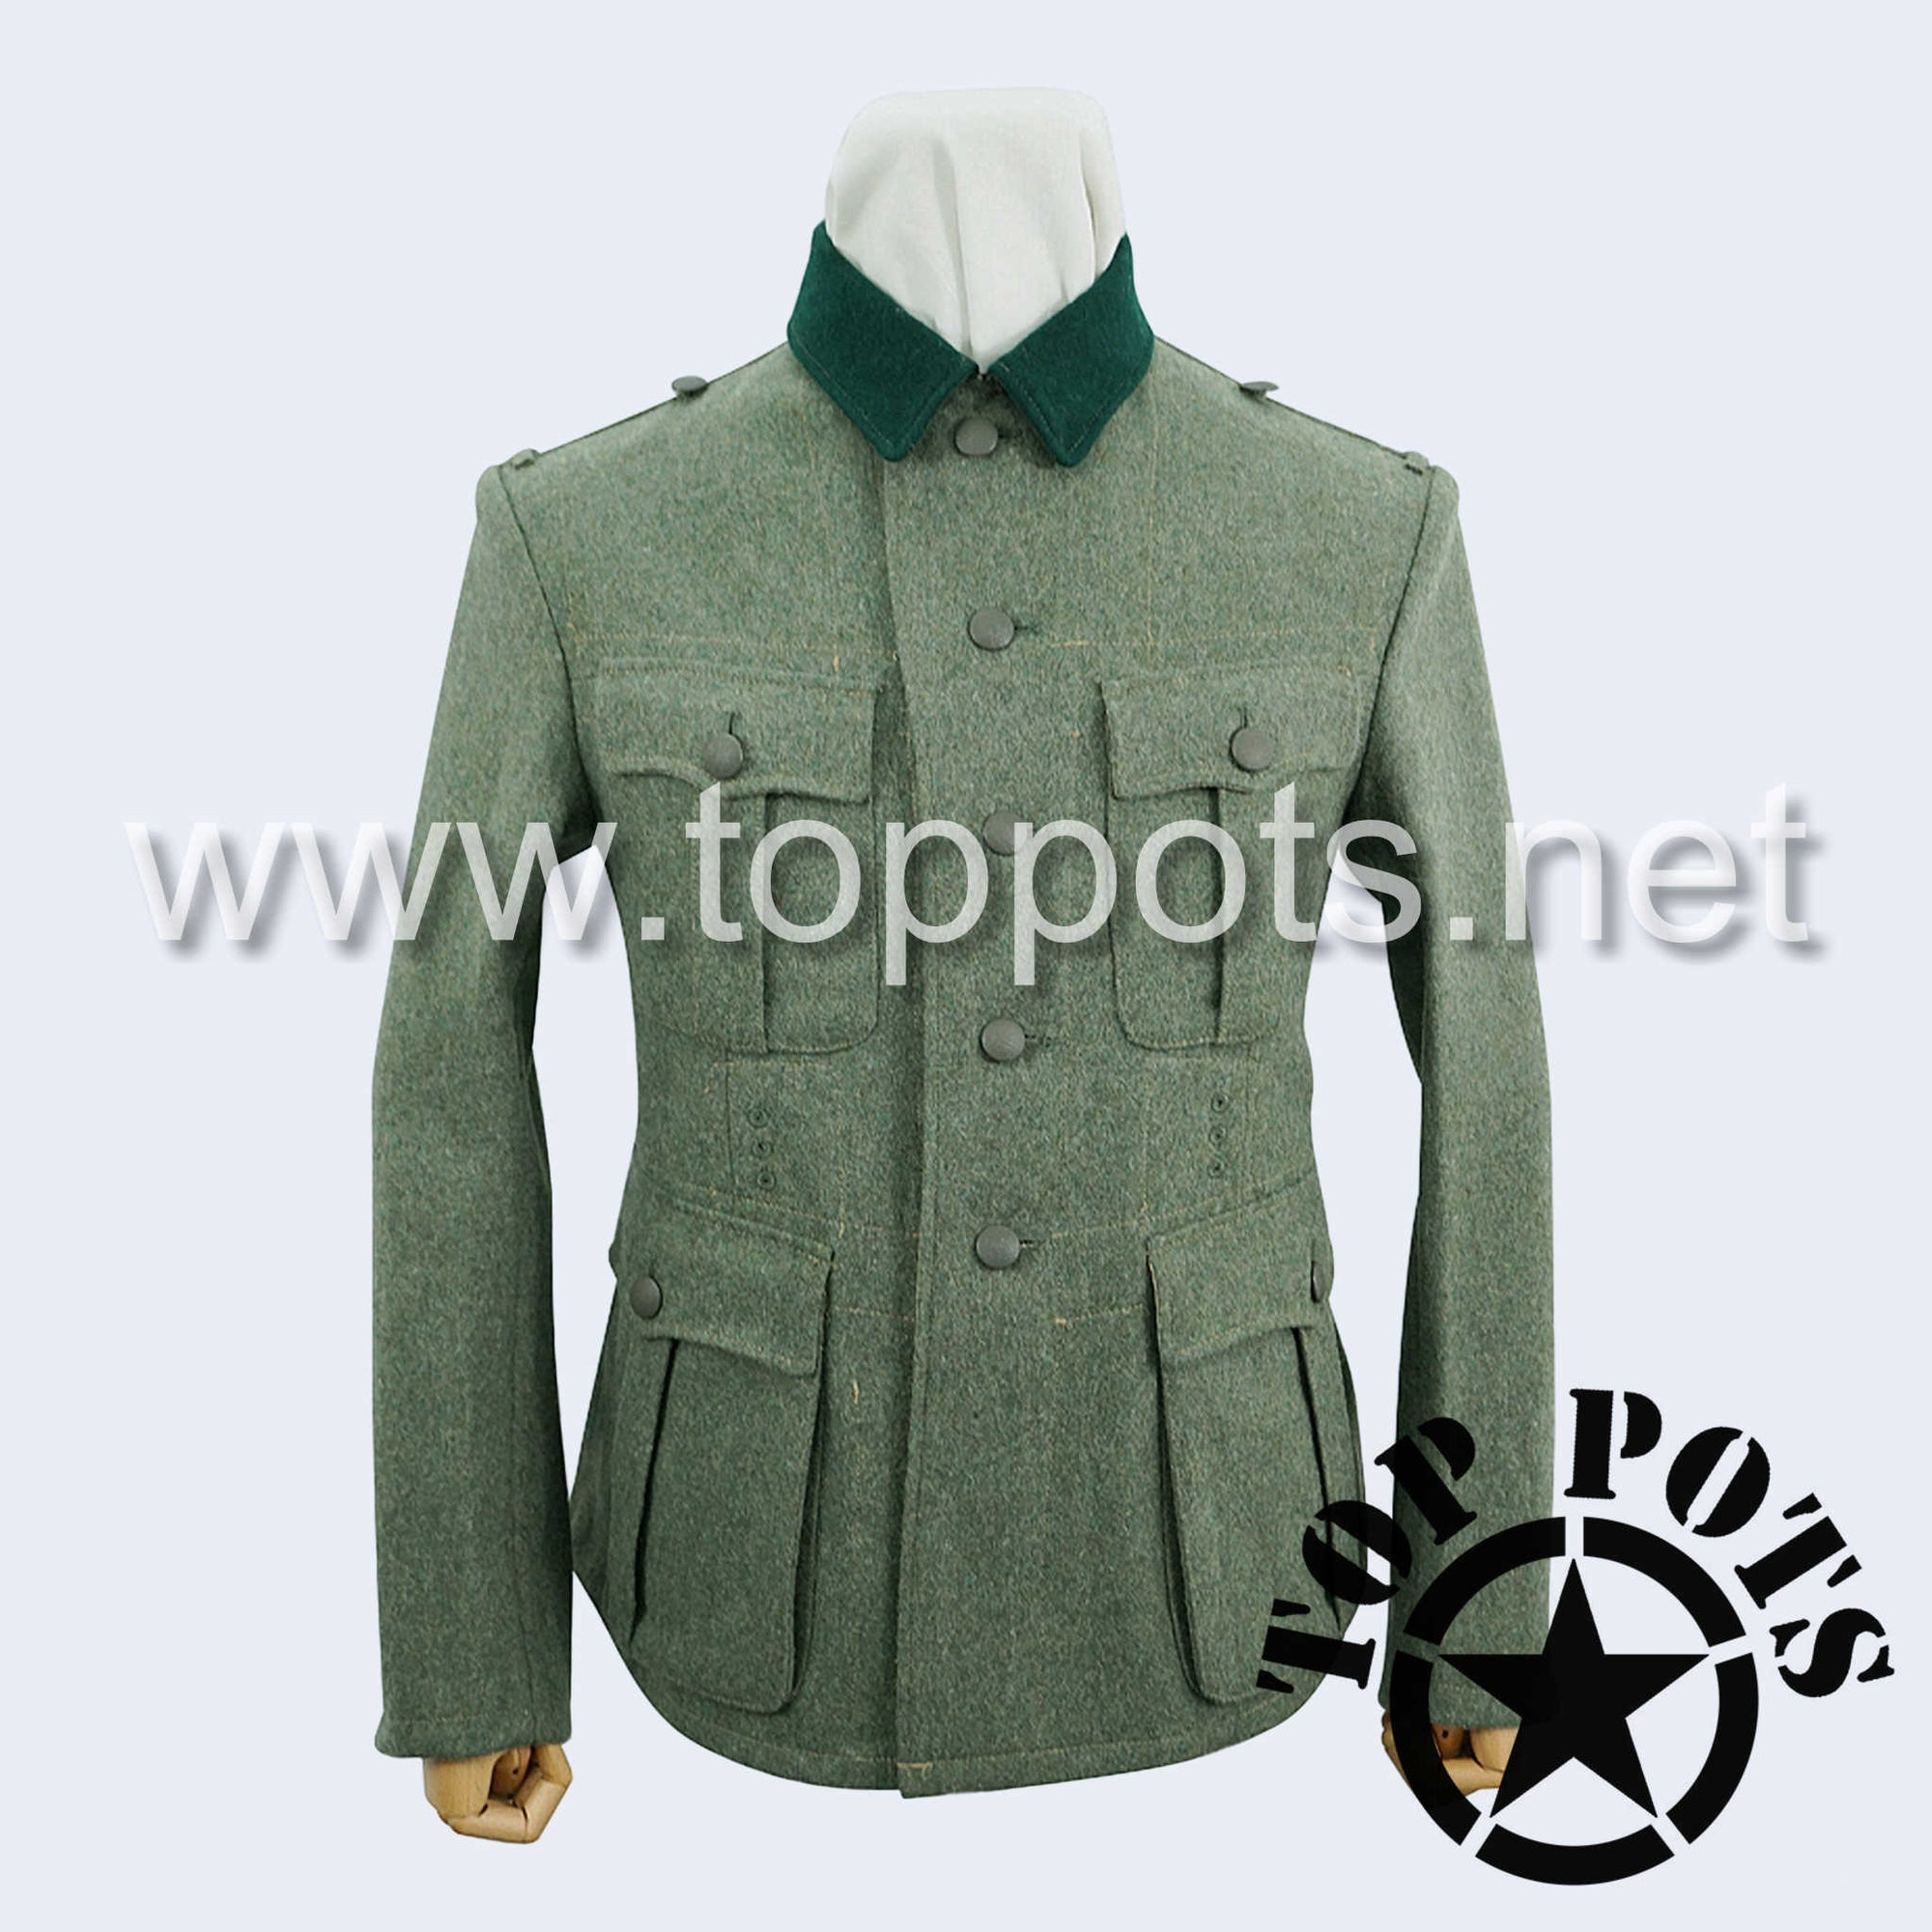 WWII German Army M1934 Heer Wehrmacht Enlisted Field Grey Wool Uniform Jacket - 5 Button Tunic (Bottle Green Collar)